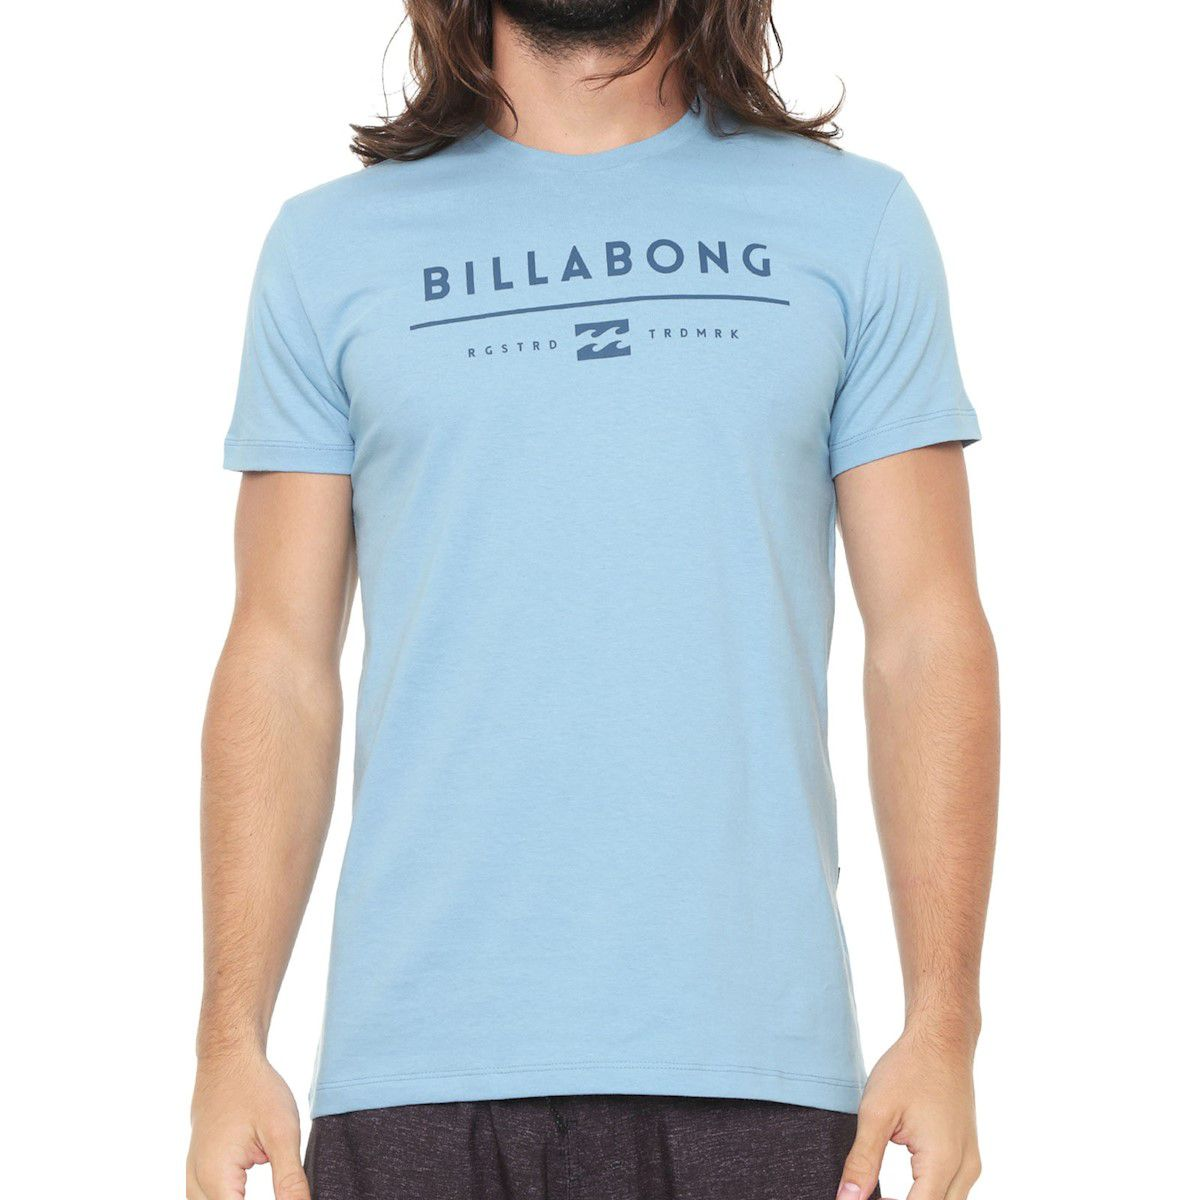 Camiseta Billabong Originals Basic